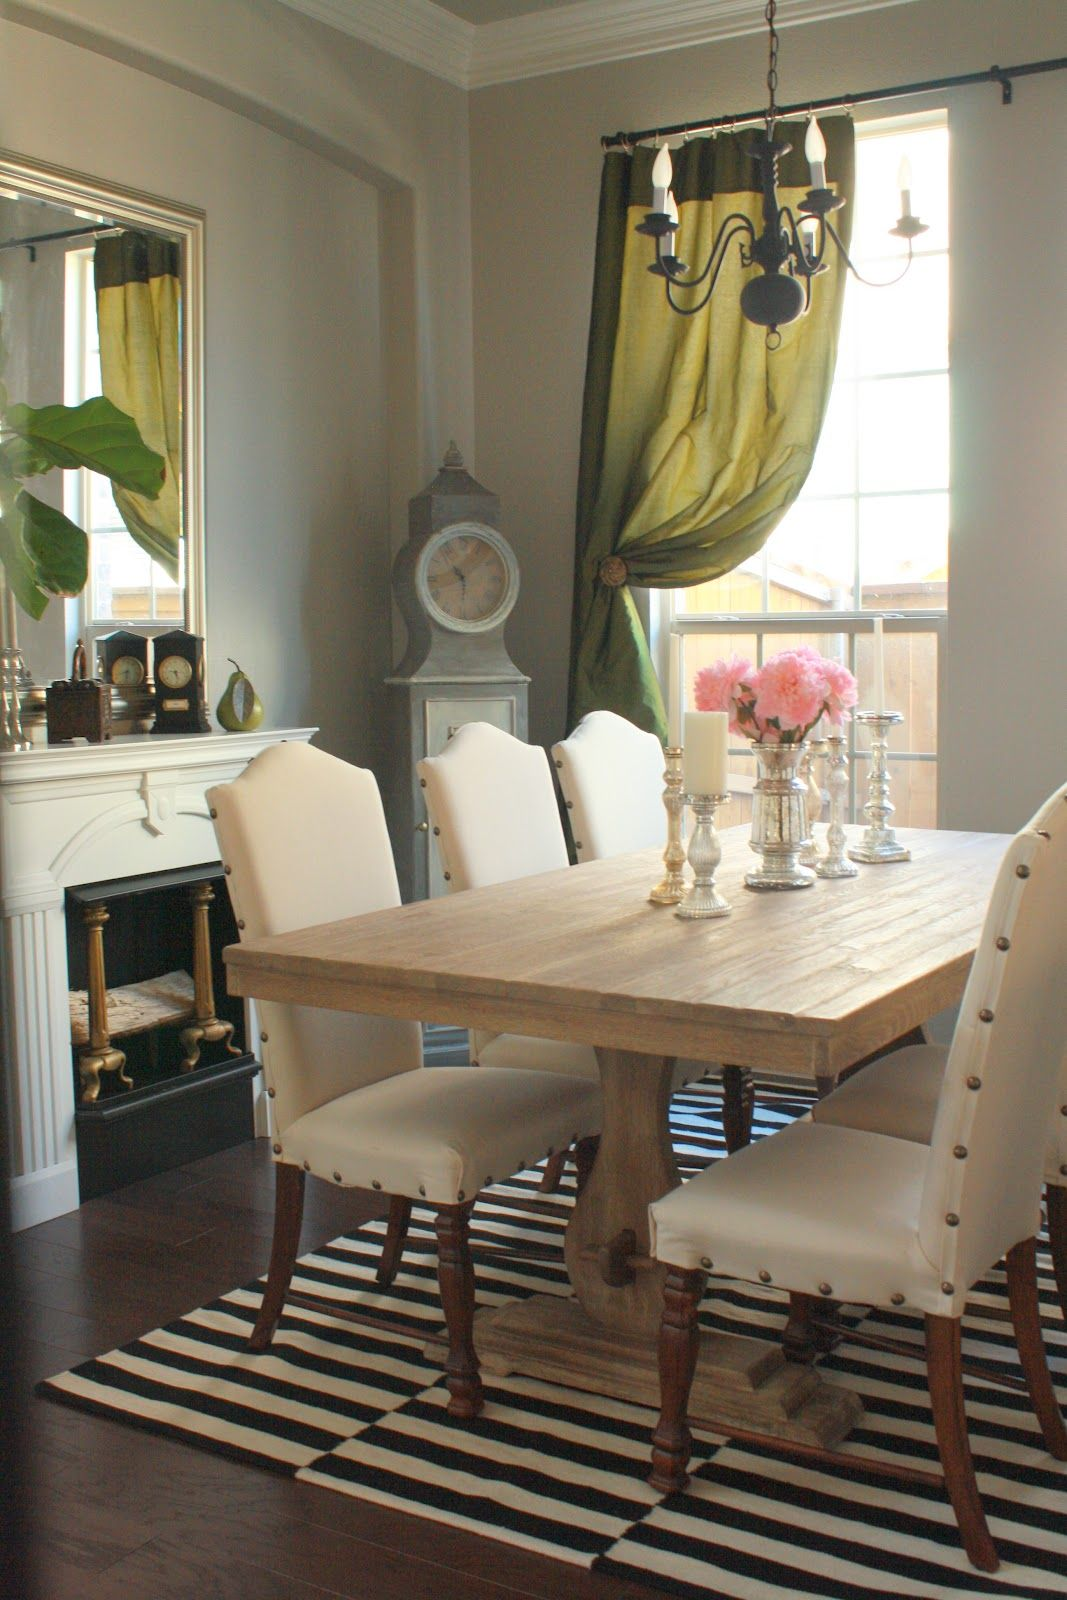 Upholstered Cane Back Dining Chairs With Nailhead Trim Diy Simple Upholster Dining Room Chairs Design Ideas